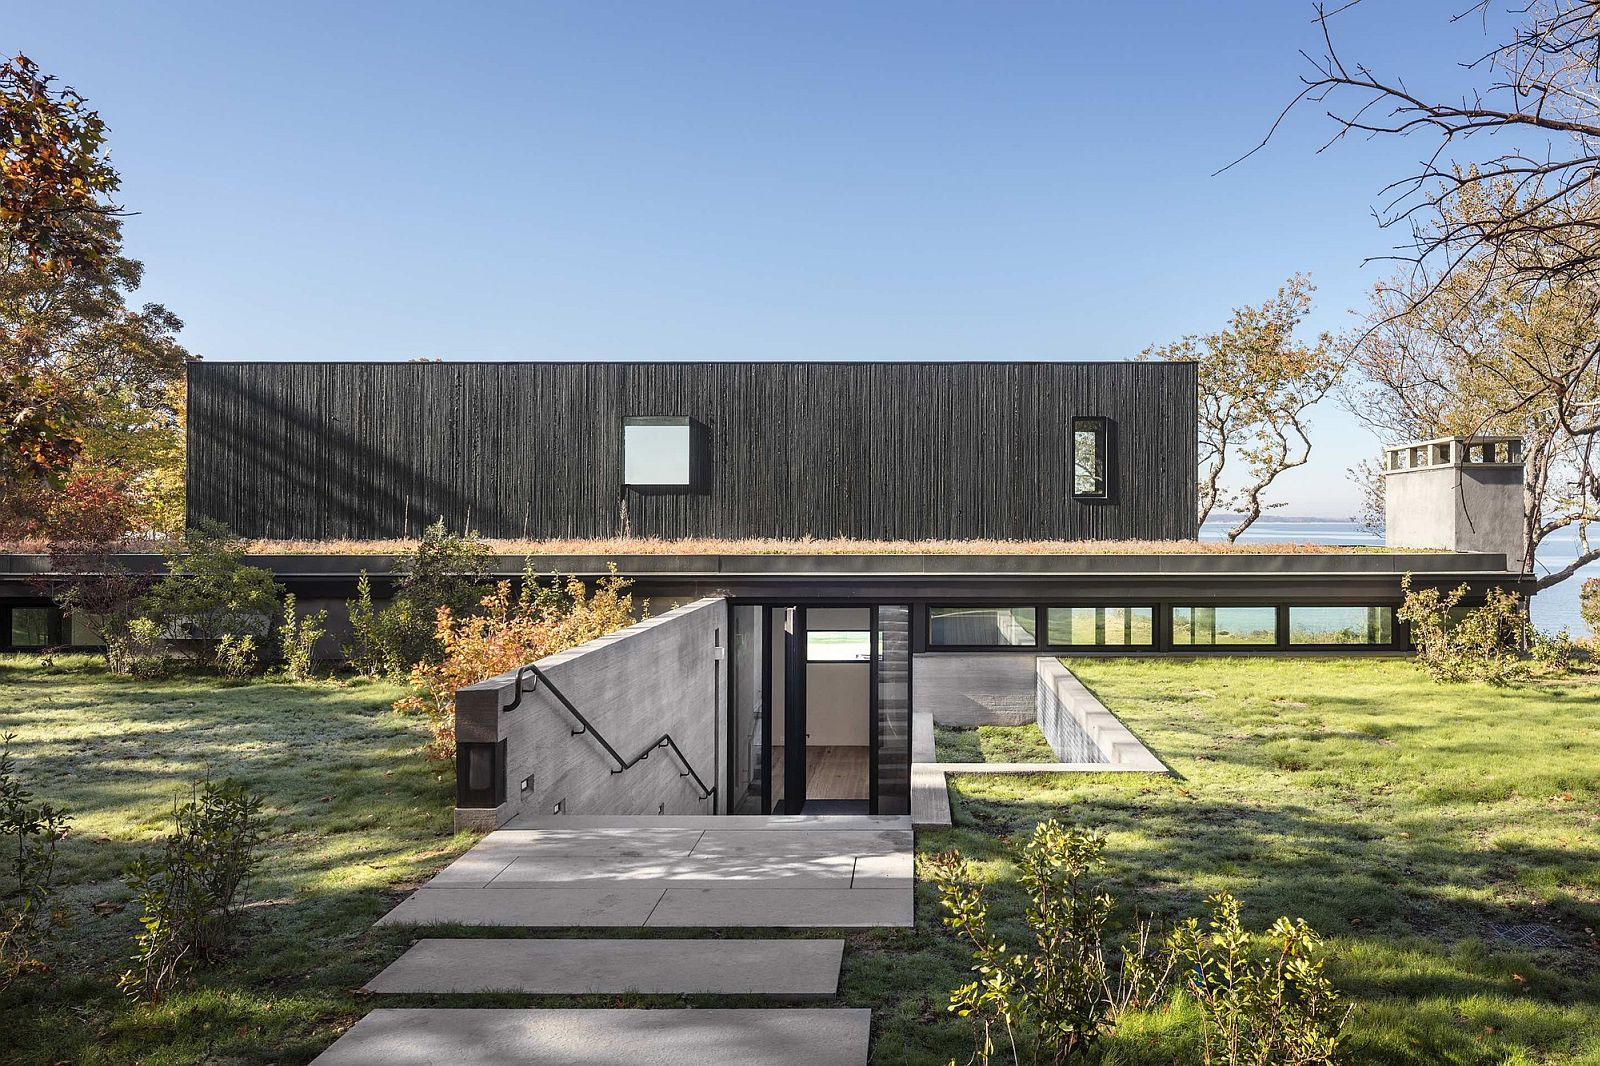 Cut in the earth creates a private entry to the house with Bay views